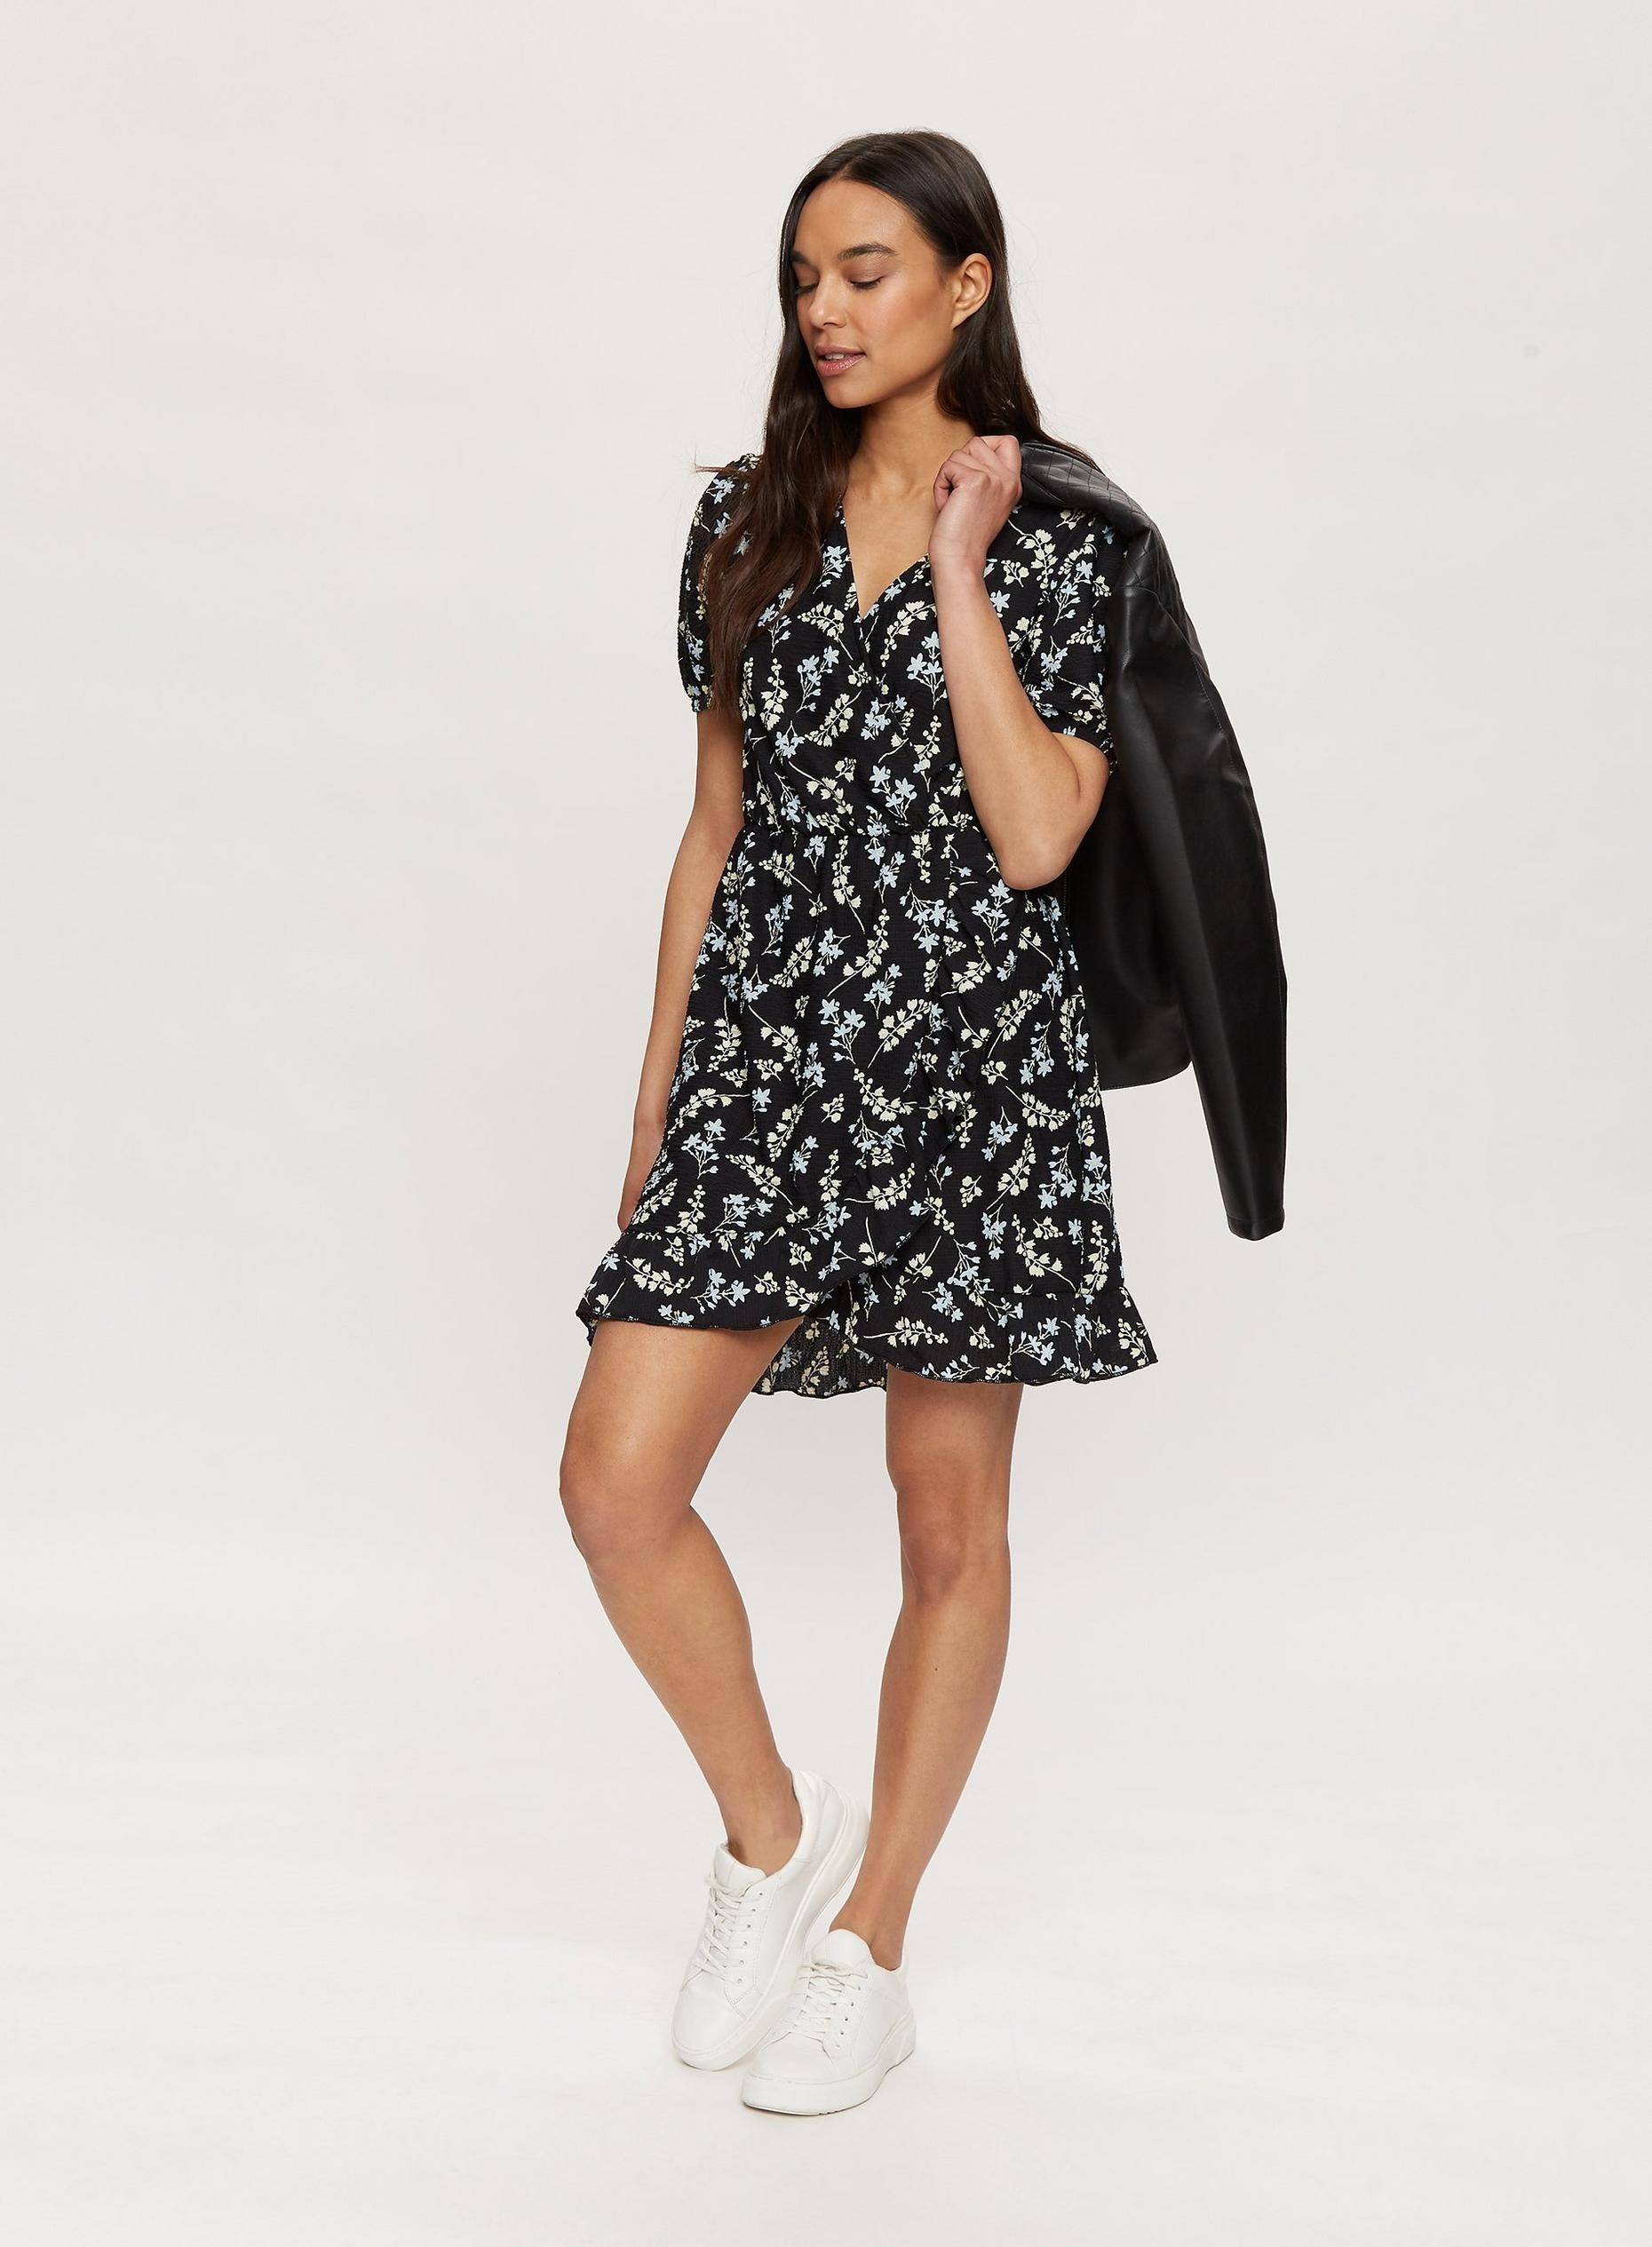 Black Floral Print Jersey Mini Dress